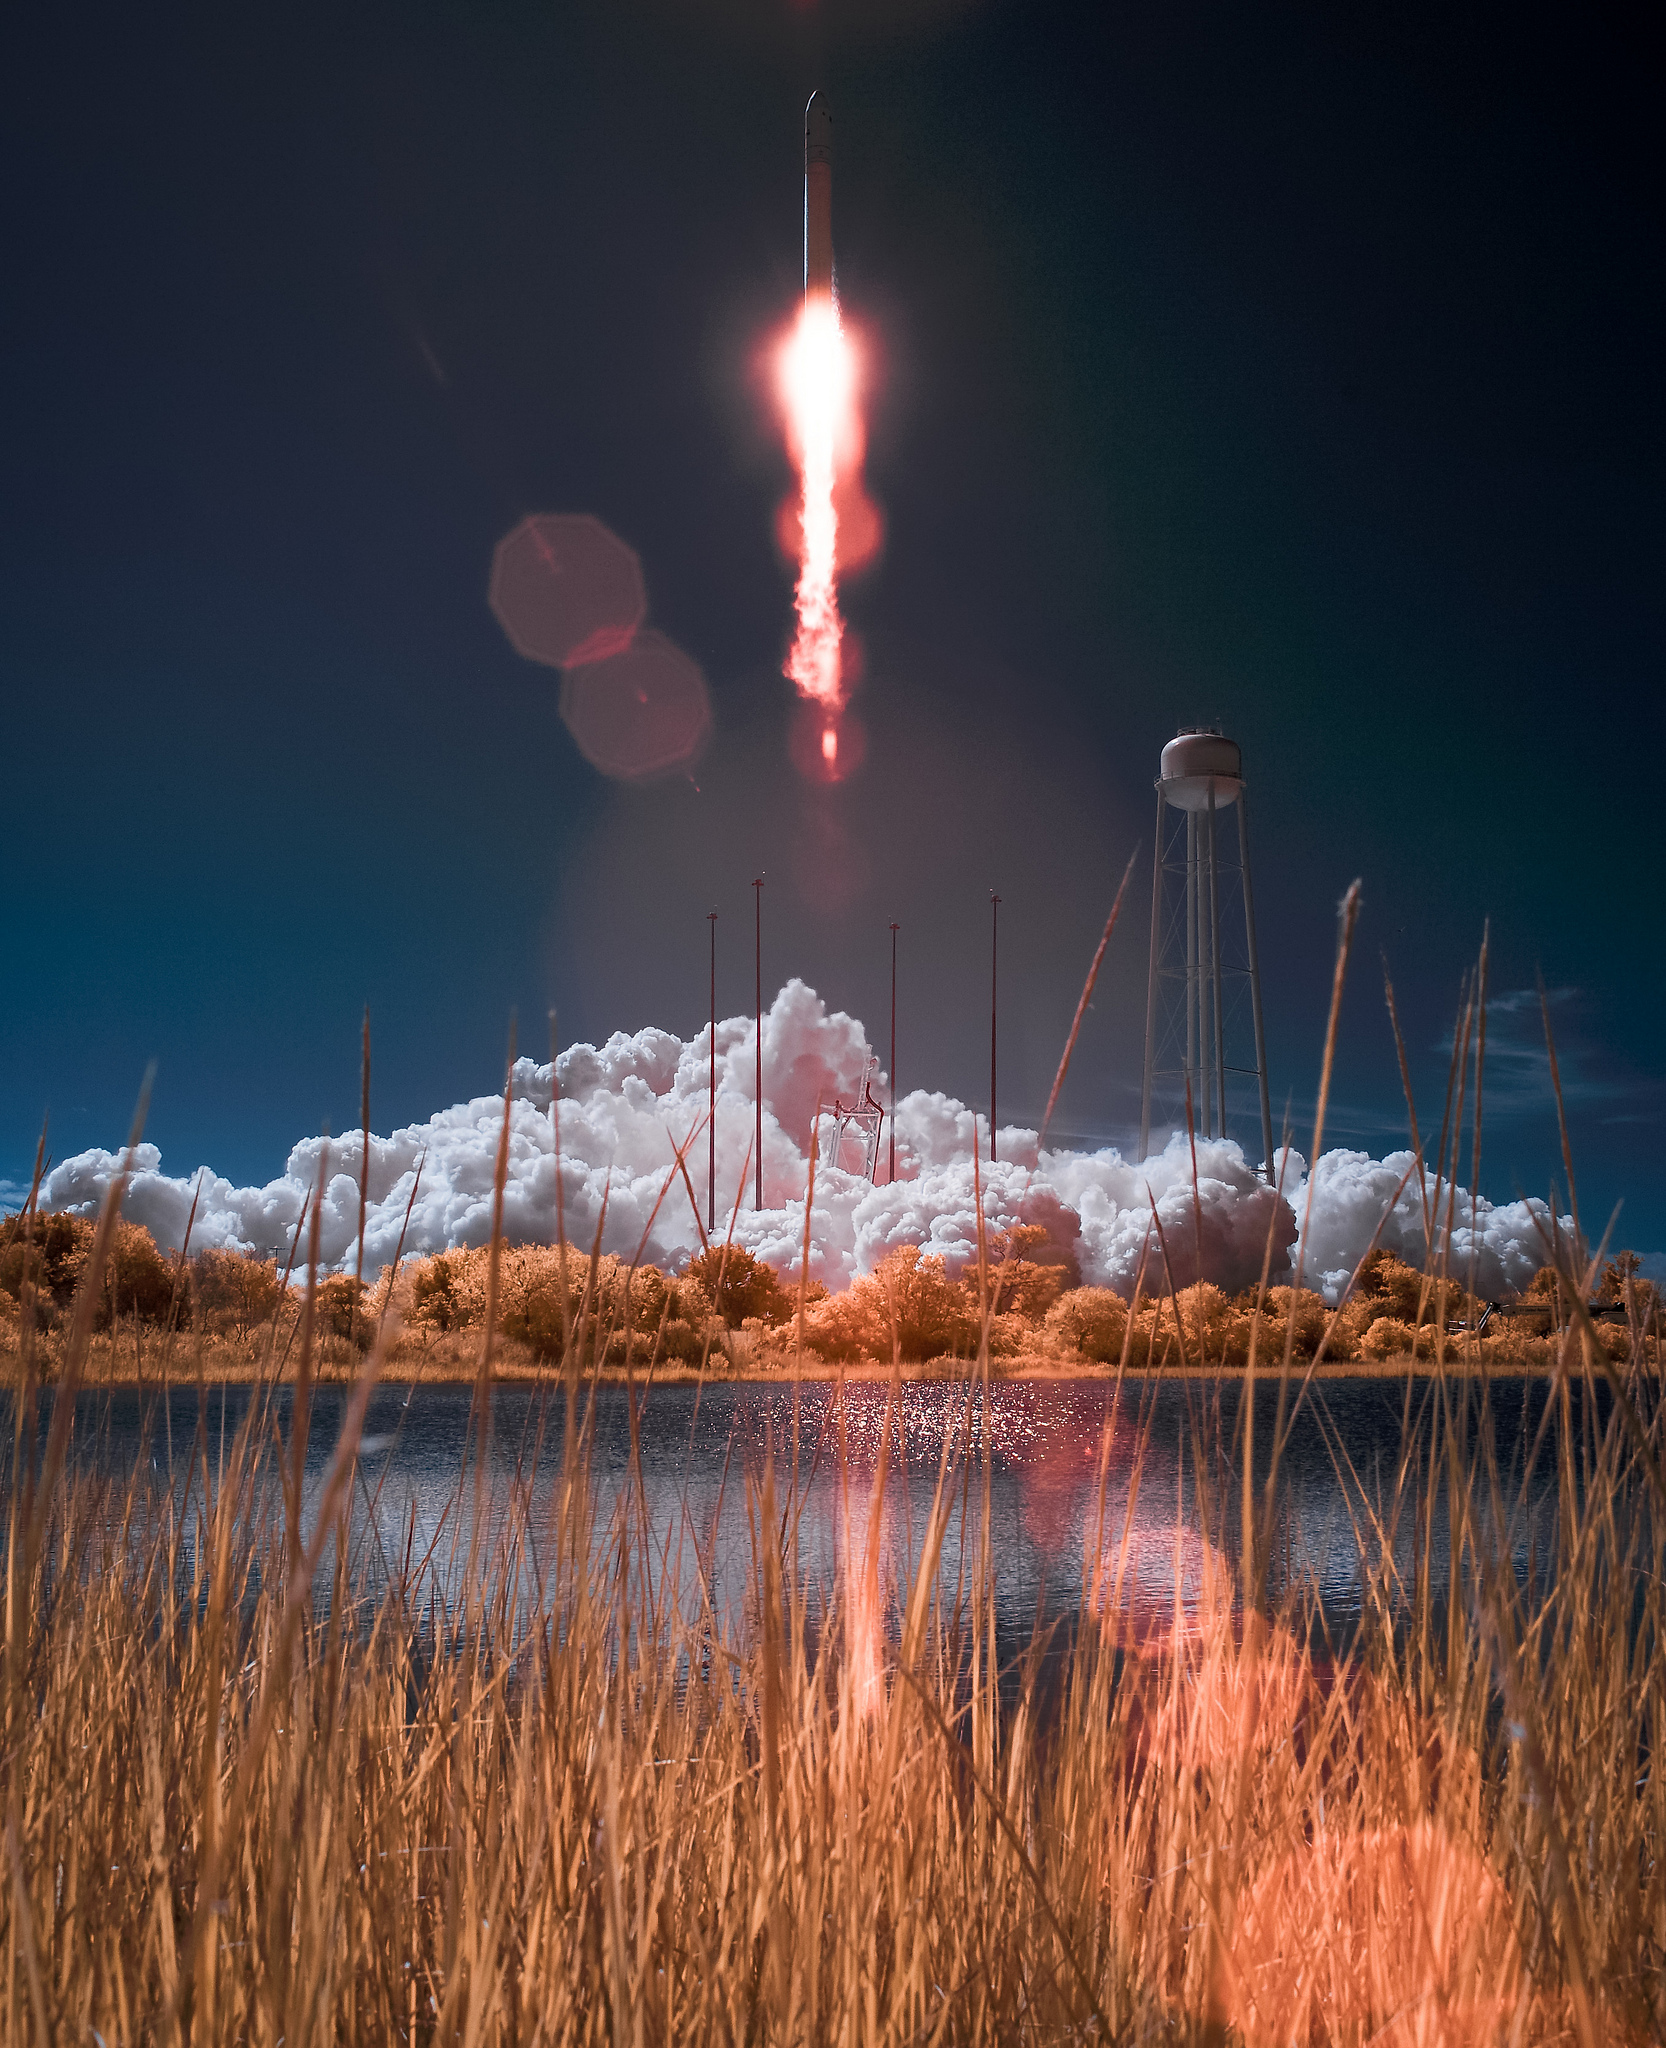 NASA Photographer Creates Awesome Private Rocket Launch Photo with Infrared